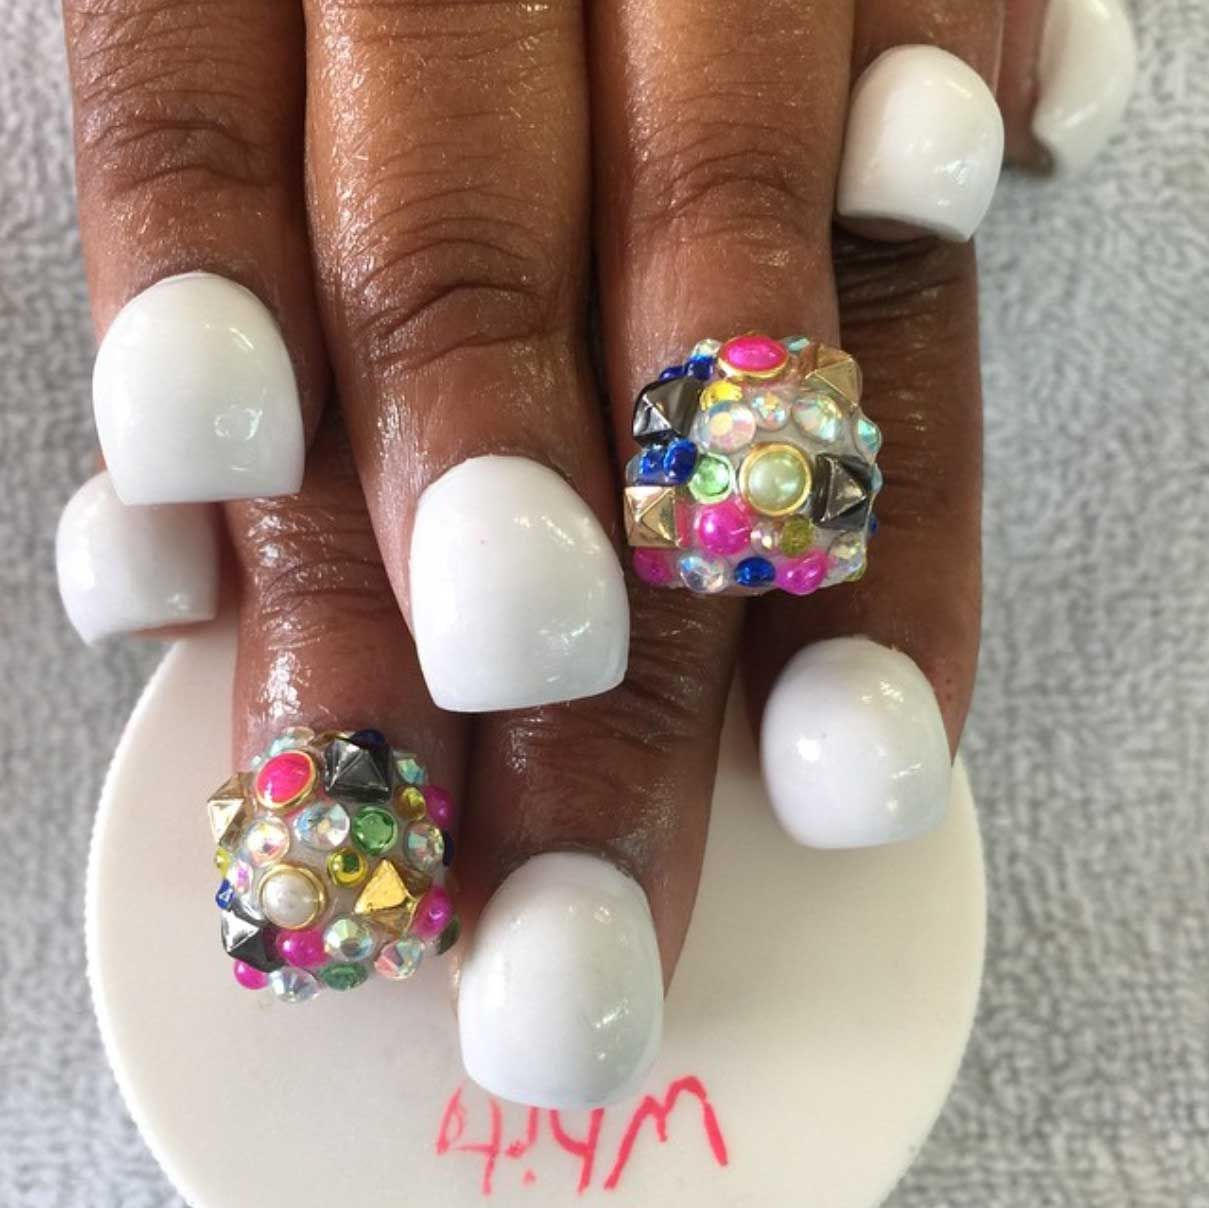 Bubble Shaped Nails Are The Crazy New Nail Shape Everyone Is ...